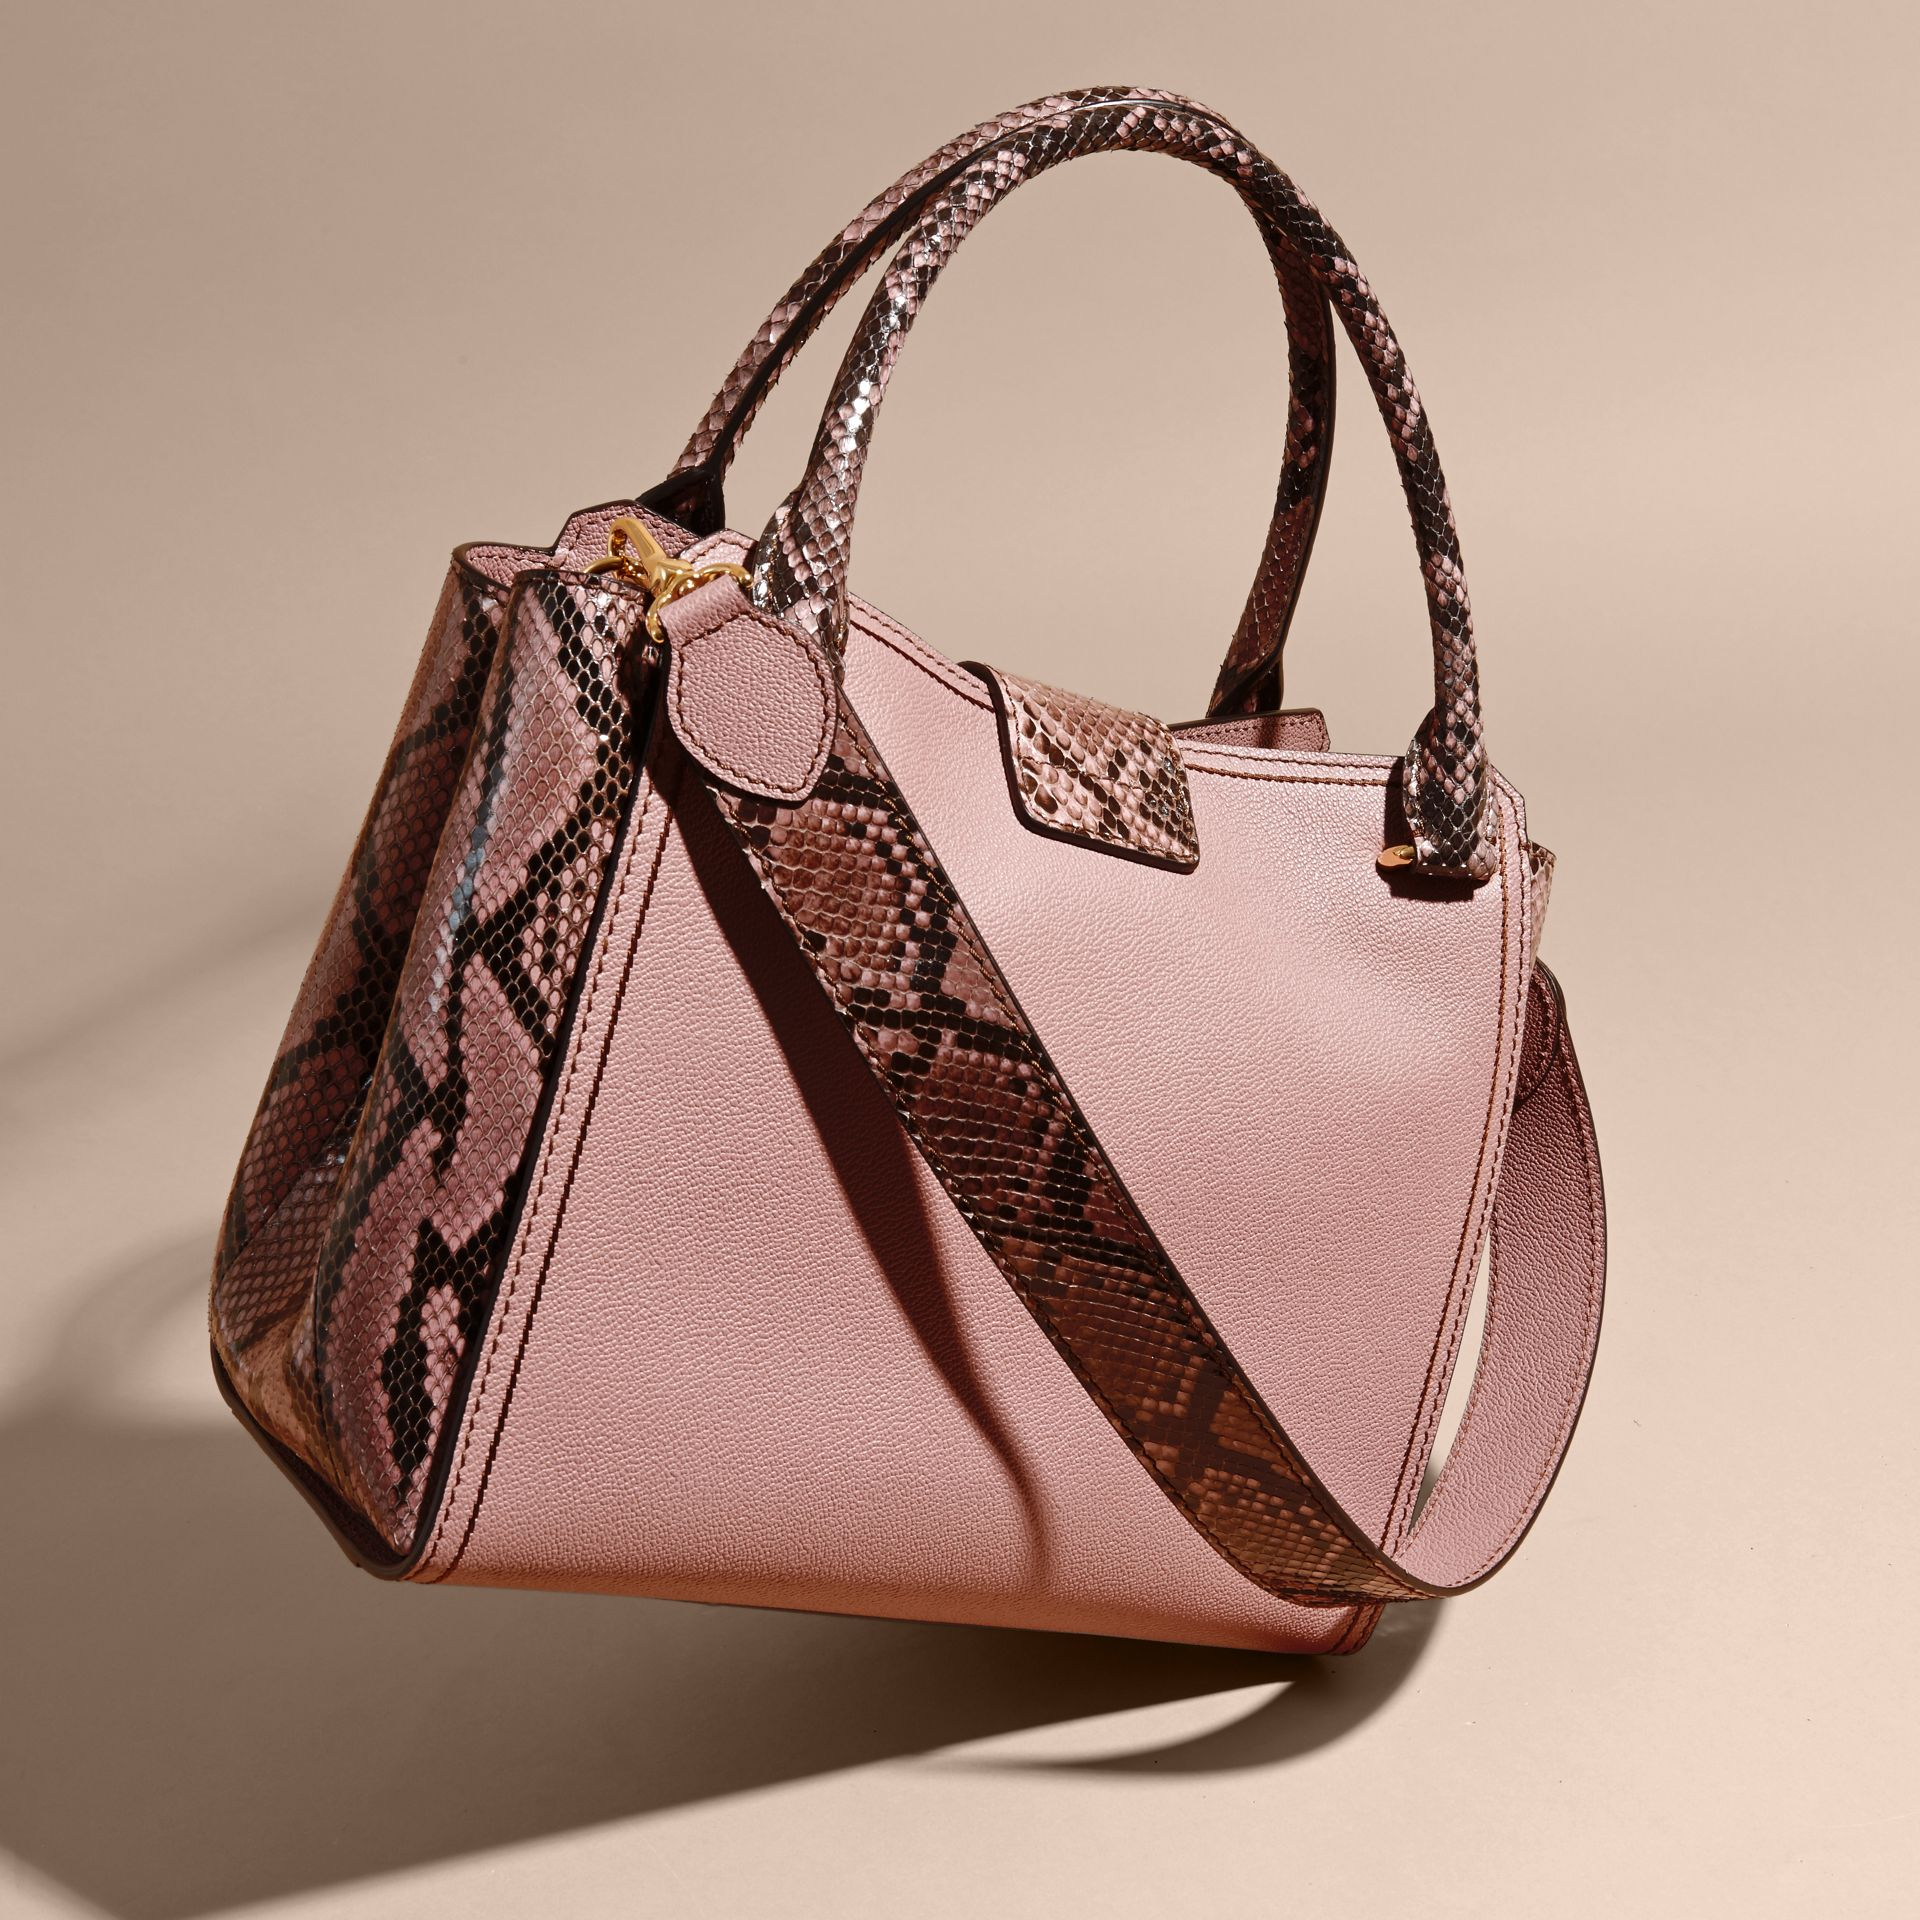 Dusty pink The Medium Buckle Tote in Grainy Leather and Python - gallery image 5